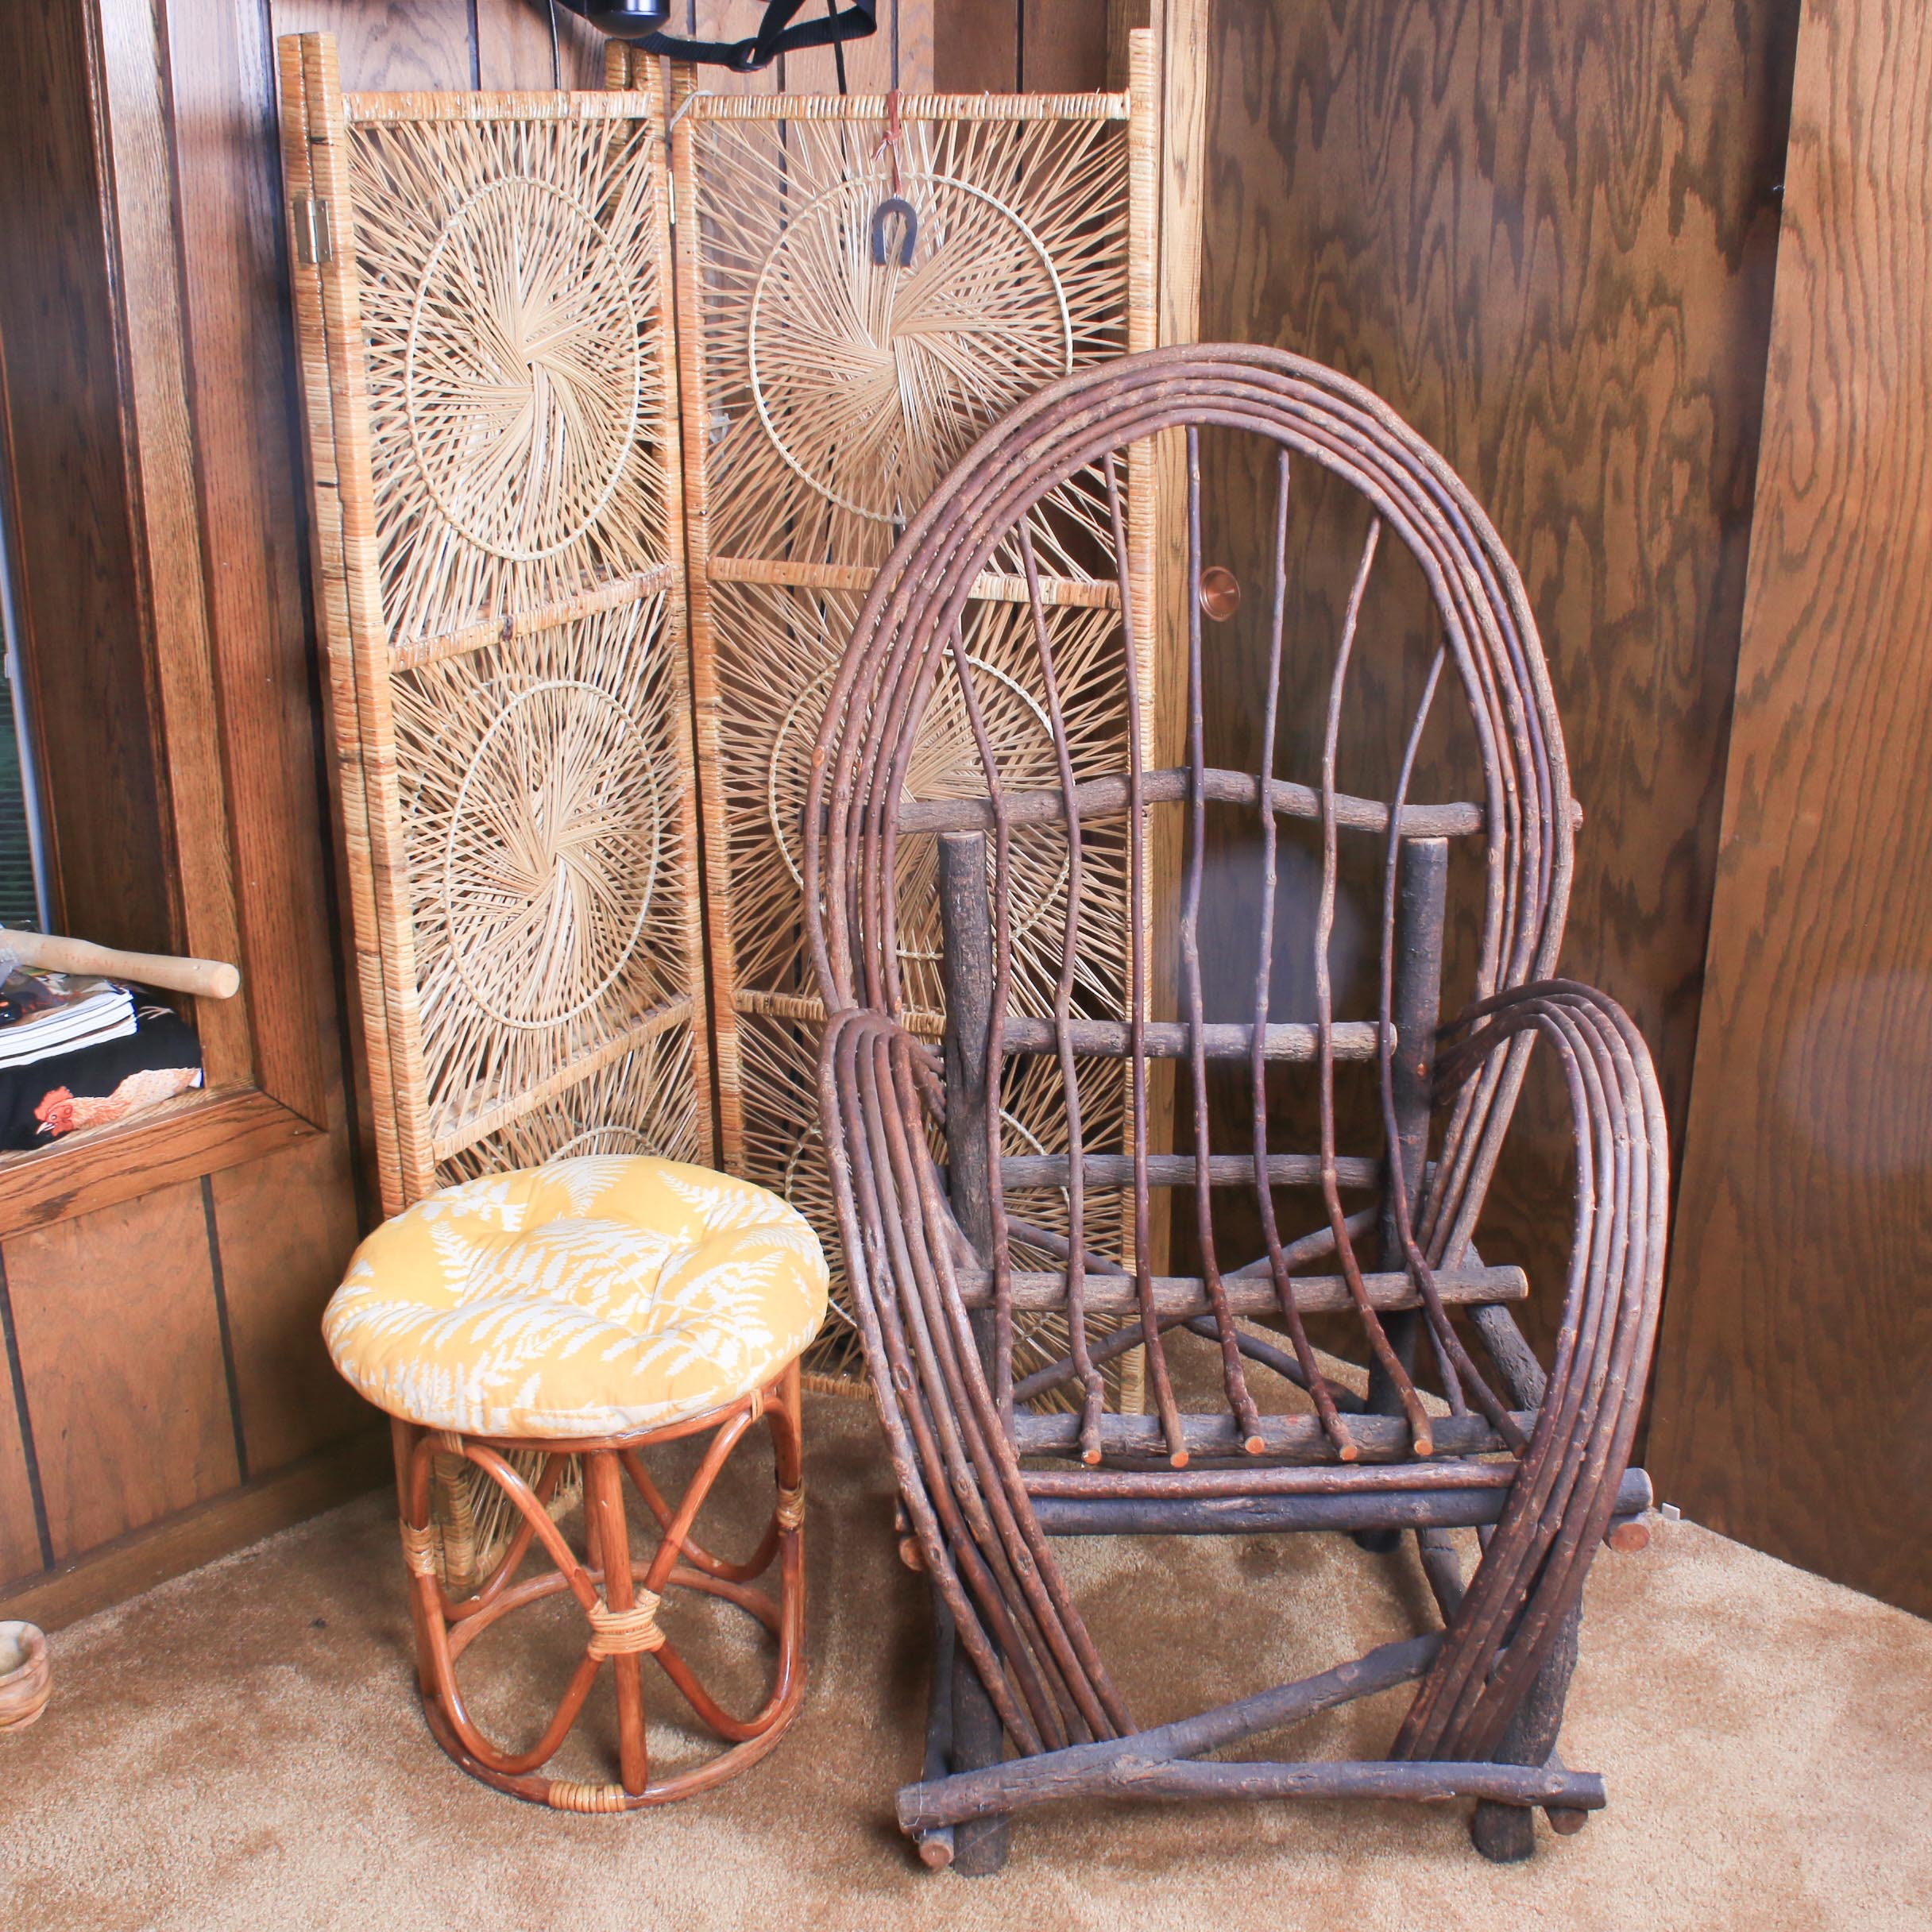 Woven Rattan Chair, Footstool and Screen